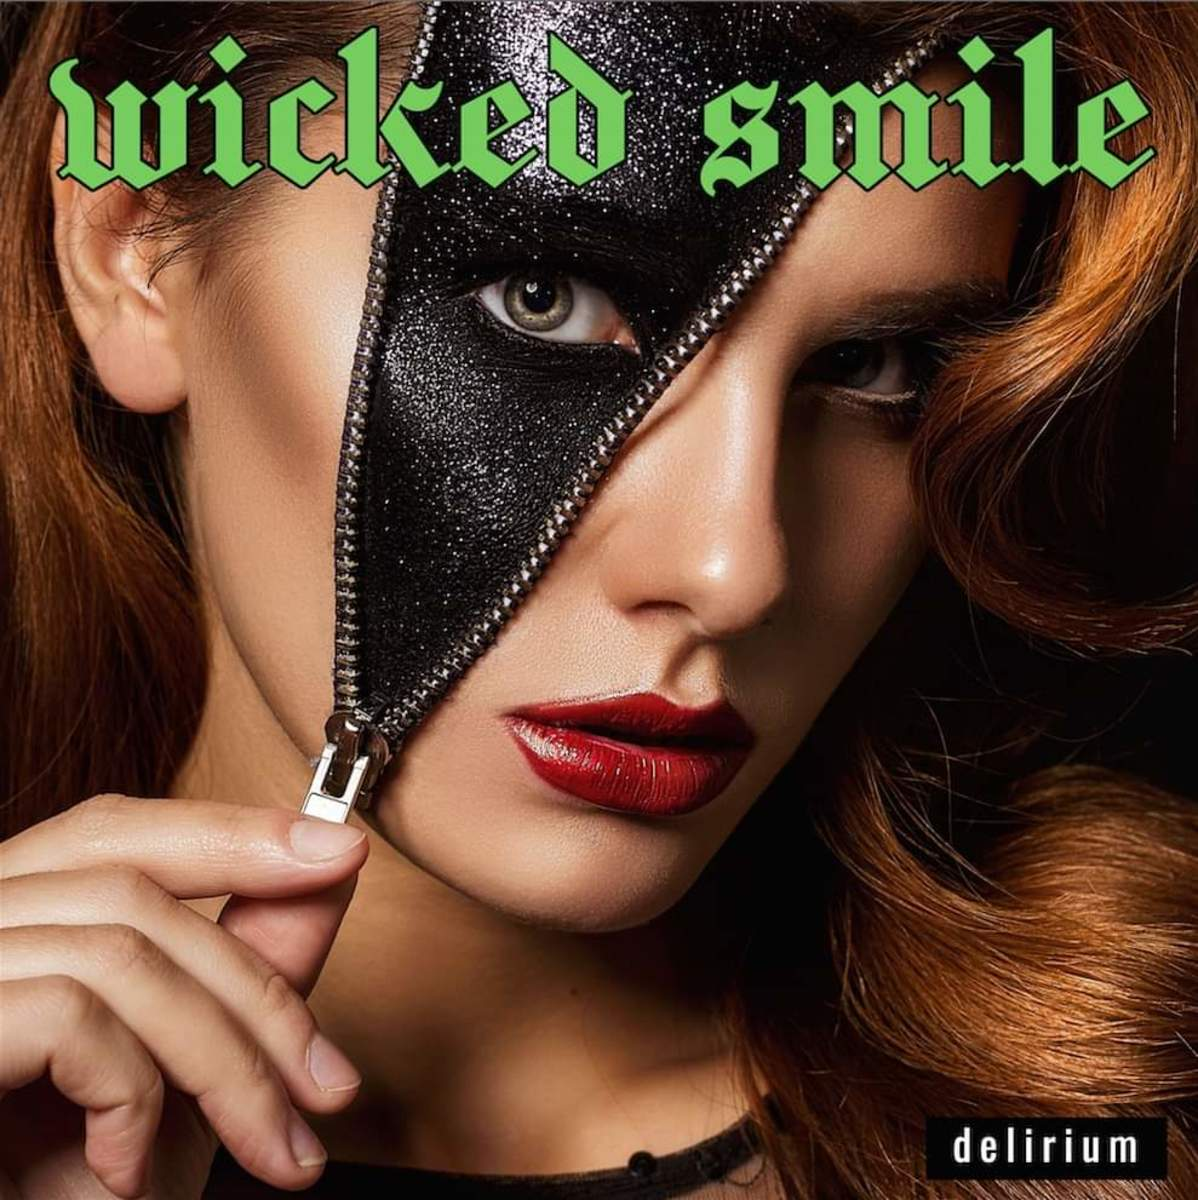 Aussie Metal Update: Wicked Smile